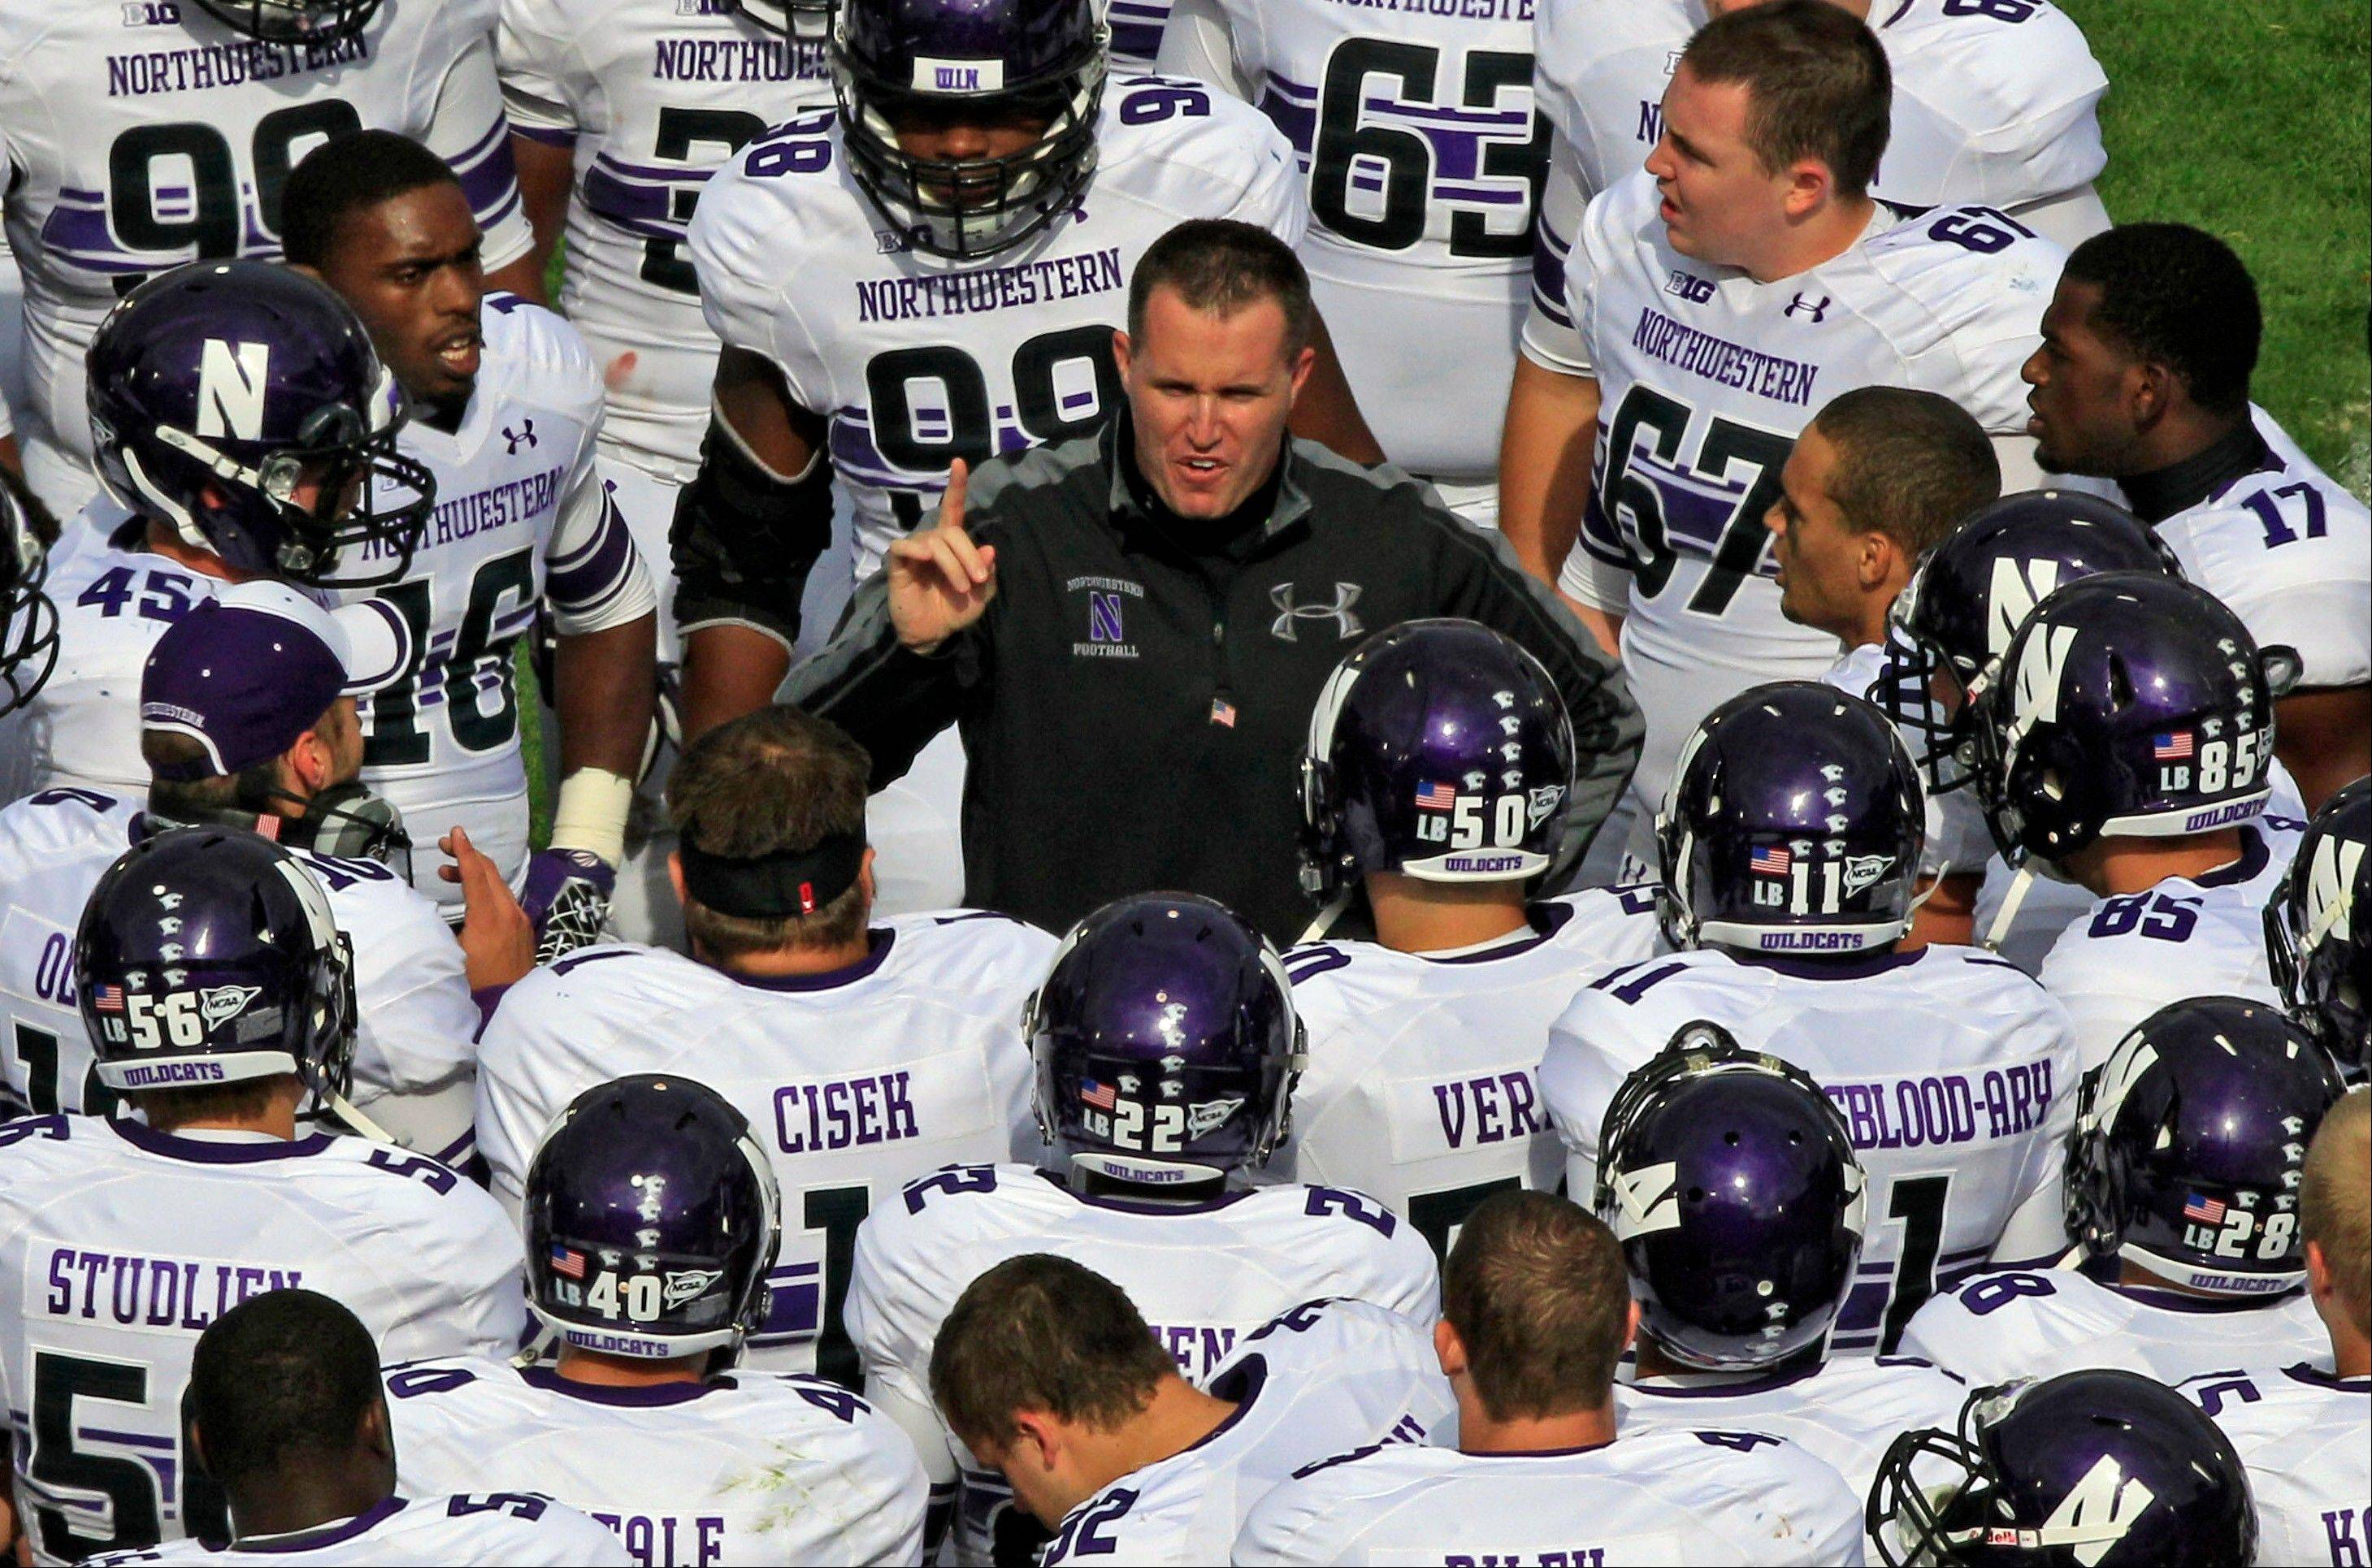 Northwestern head coach Pat Fitzgerald, center, talks to his team during the fourth quarter of Saturday's loss to Penn State. The NU spread offense, which averaged less than 4 yards per pass last week, will try to regroup against 4-1 Minnesota.